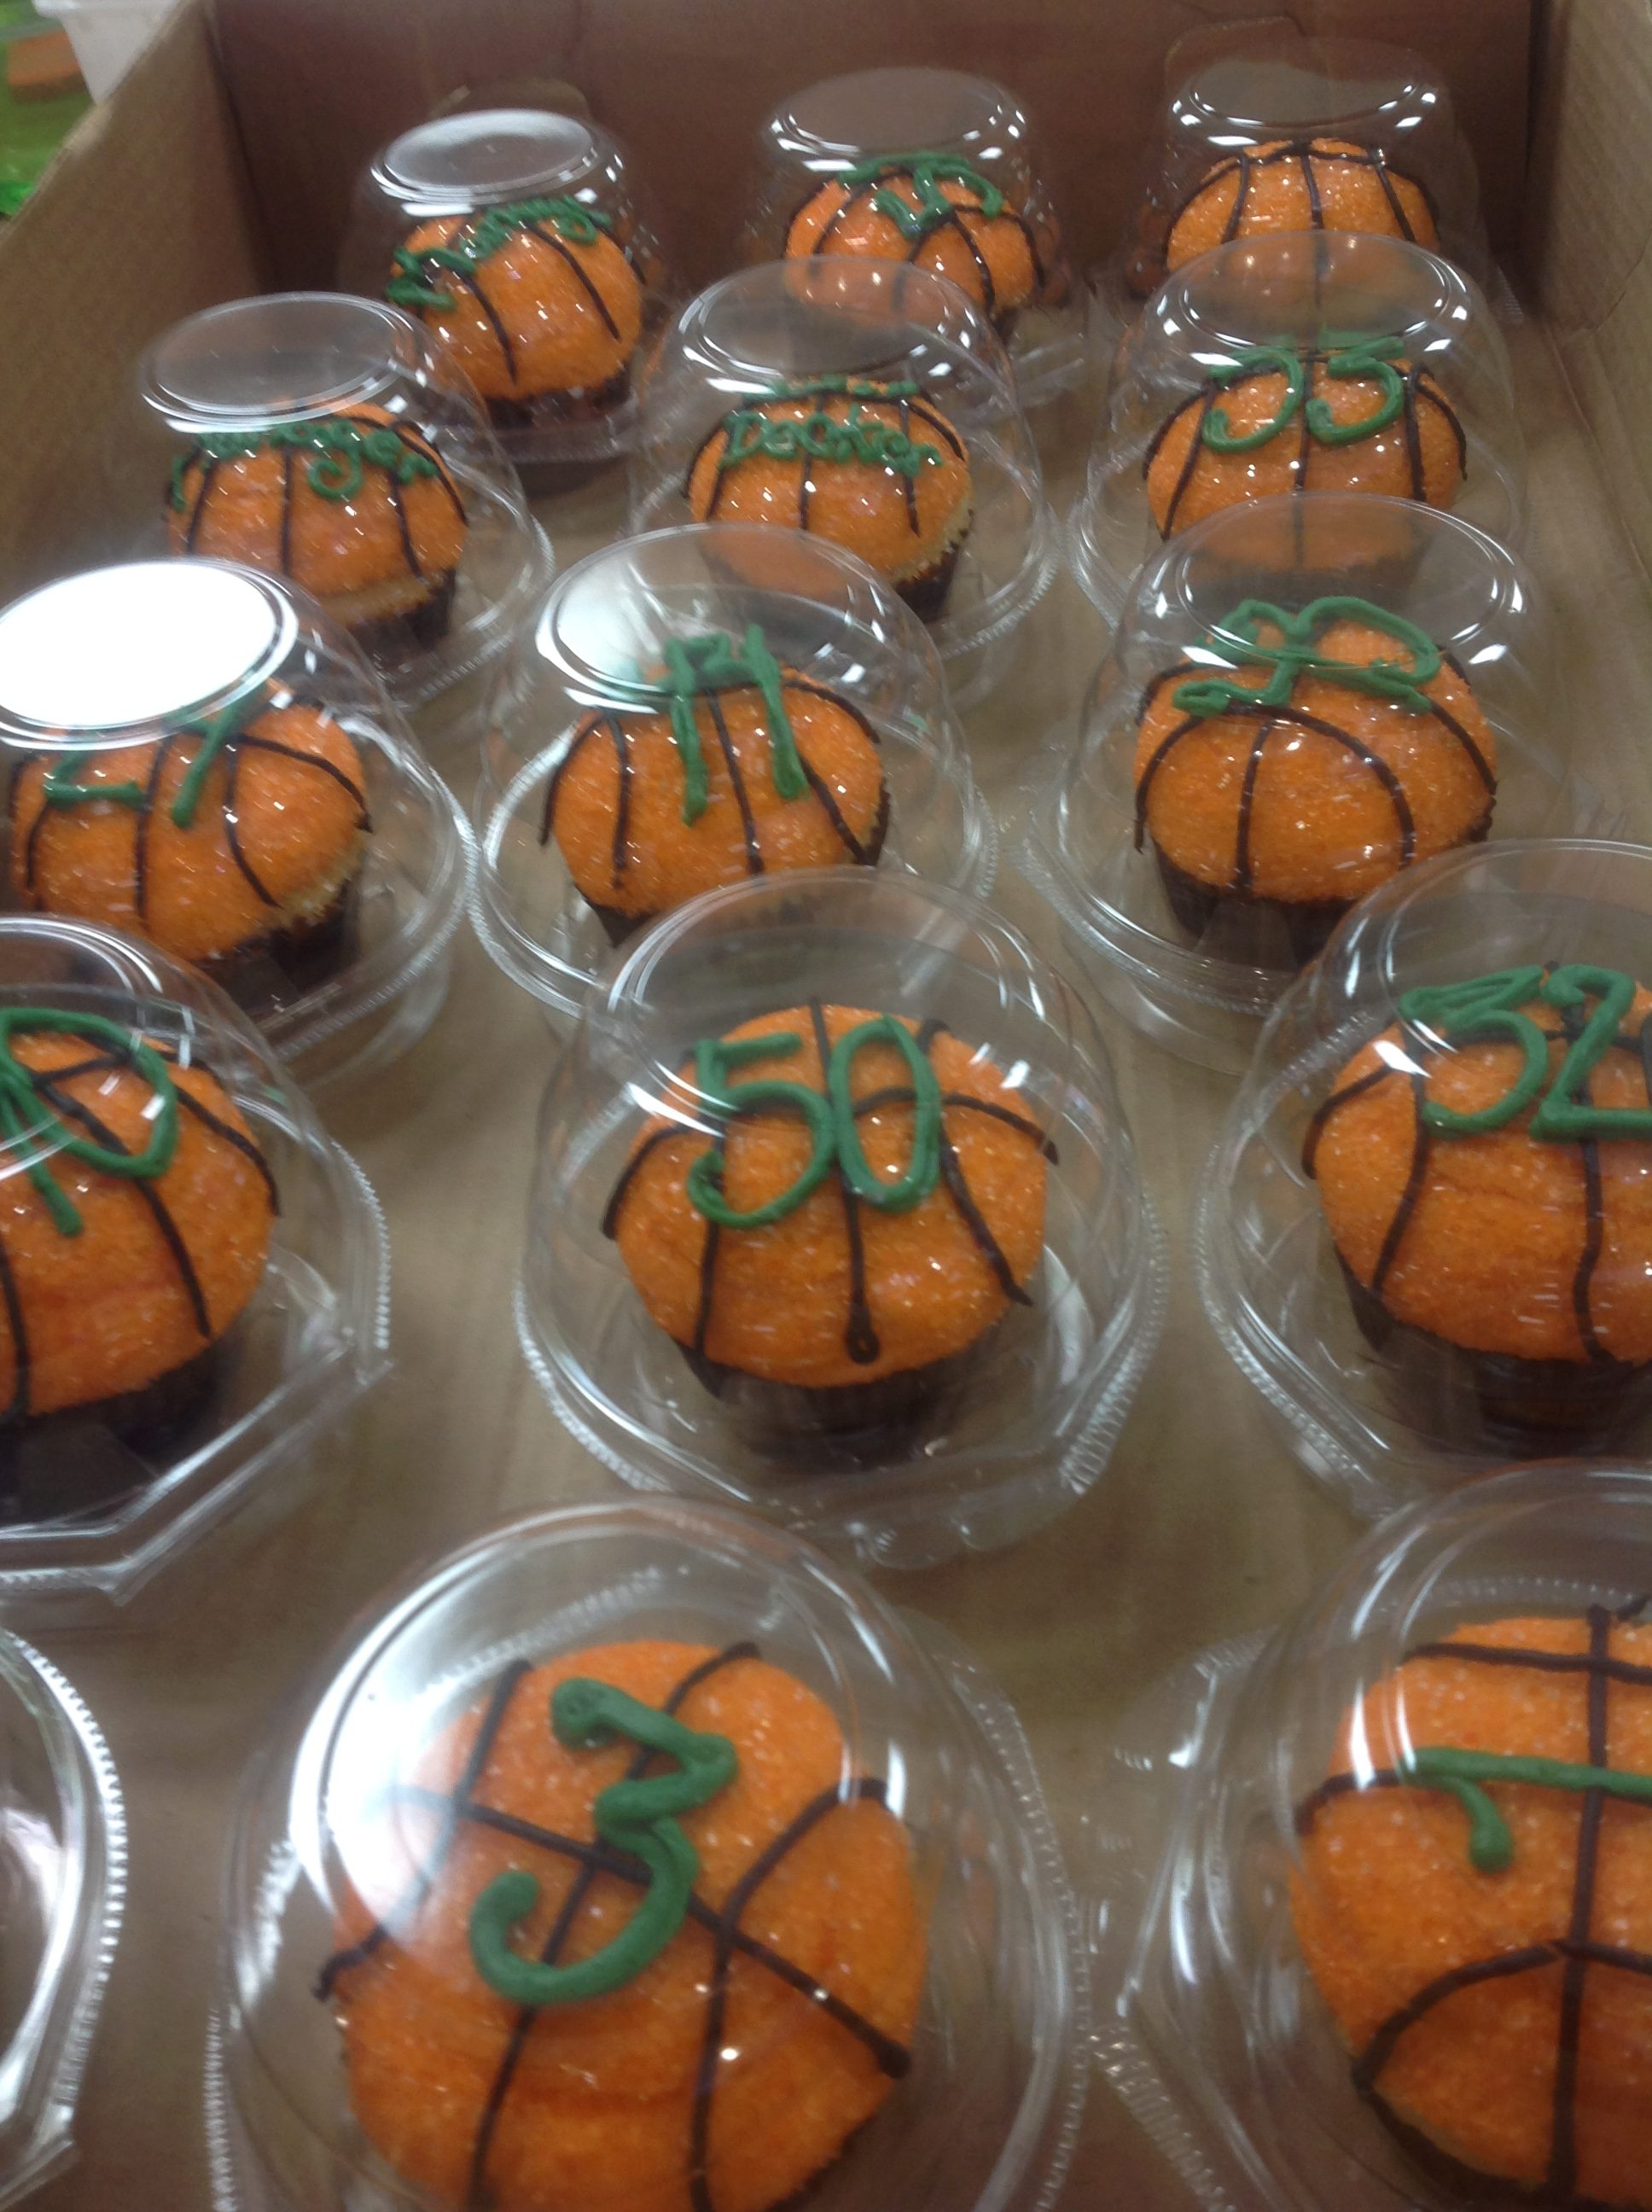 Individually packed cupcakes at Dolce and Biscotti Italian Bakery